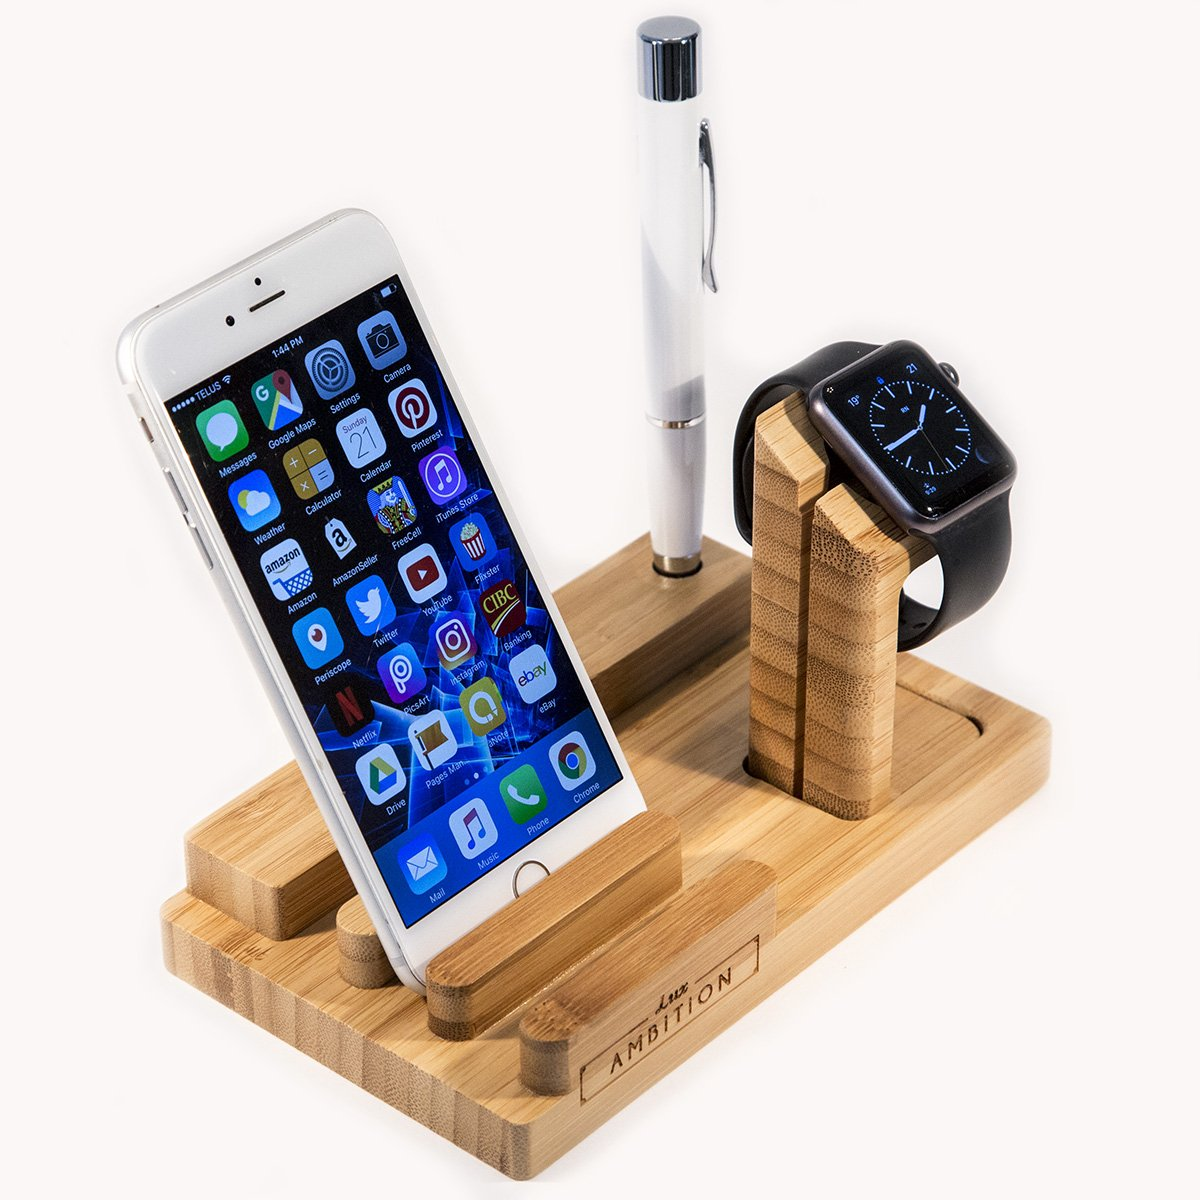 Lux Ambition Apple Watch Stand with Wood Charging Station Wooden Dock 3 in 1 Bamboo Bracket Desk Holder for iPhone Iwatch Ipad